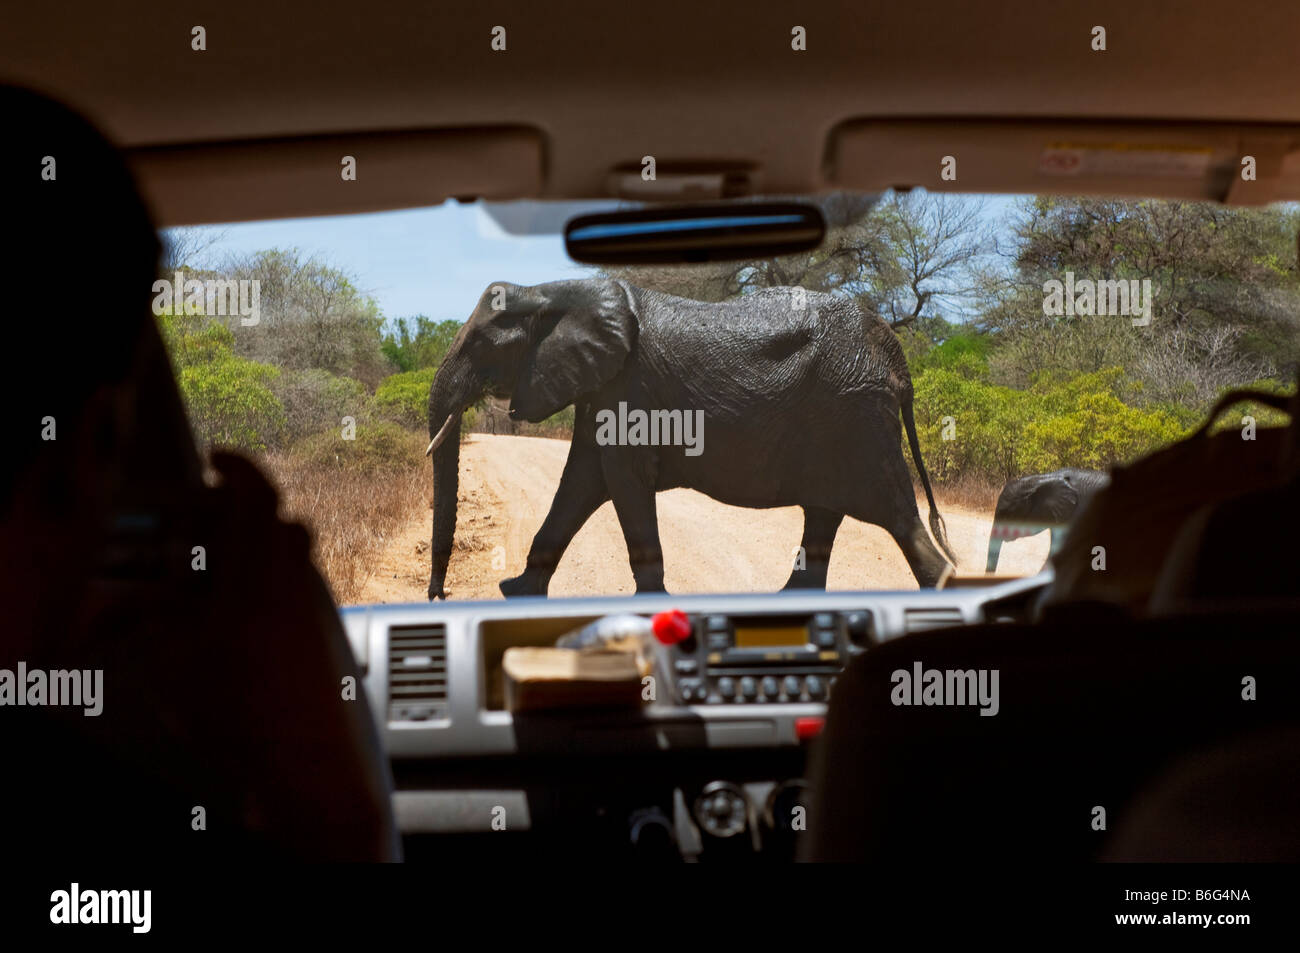 Elefant crossing en Safari Safari dans le parc national Kruger KRÜGER NP véhicule bus minibus voiture Photo Stock